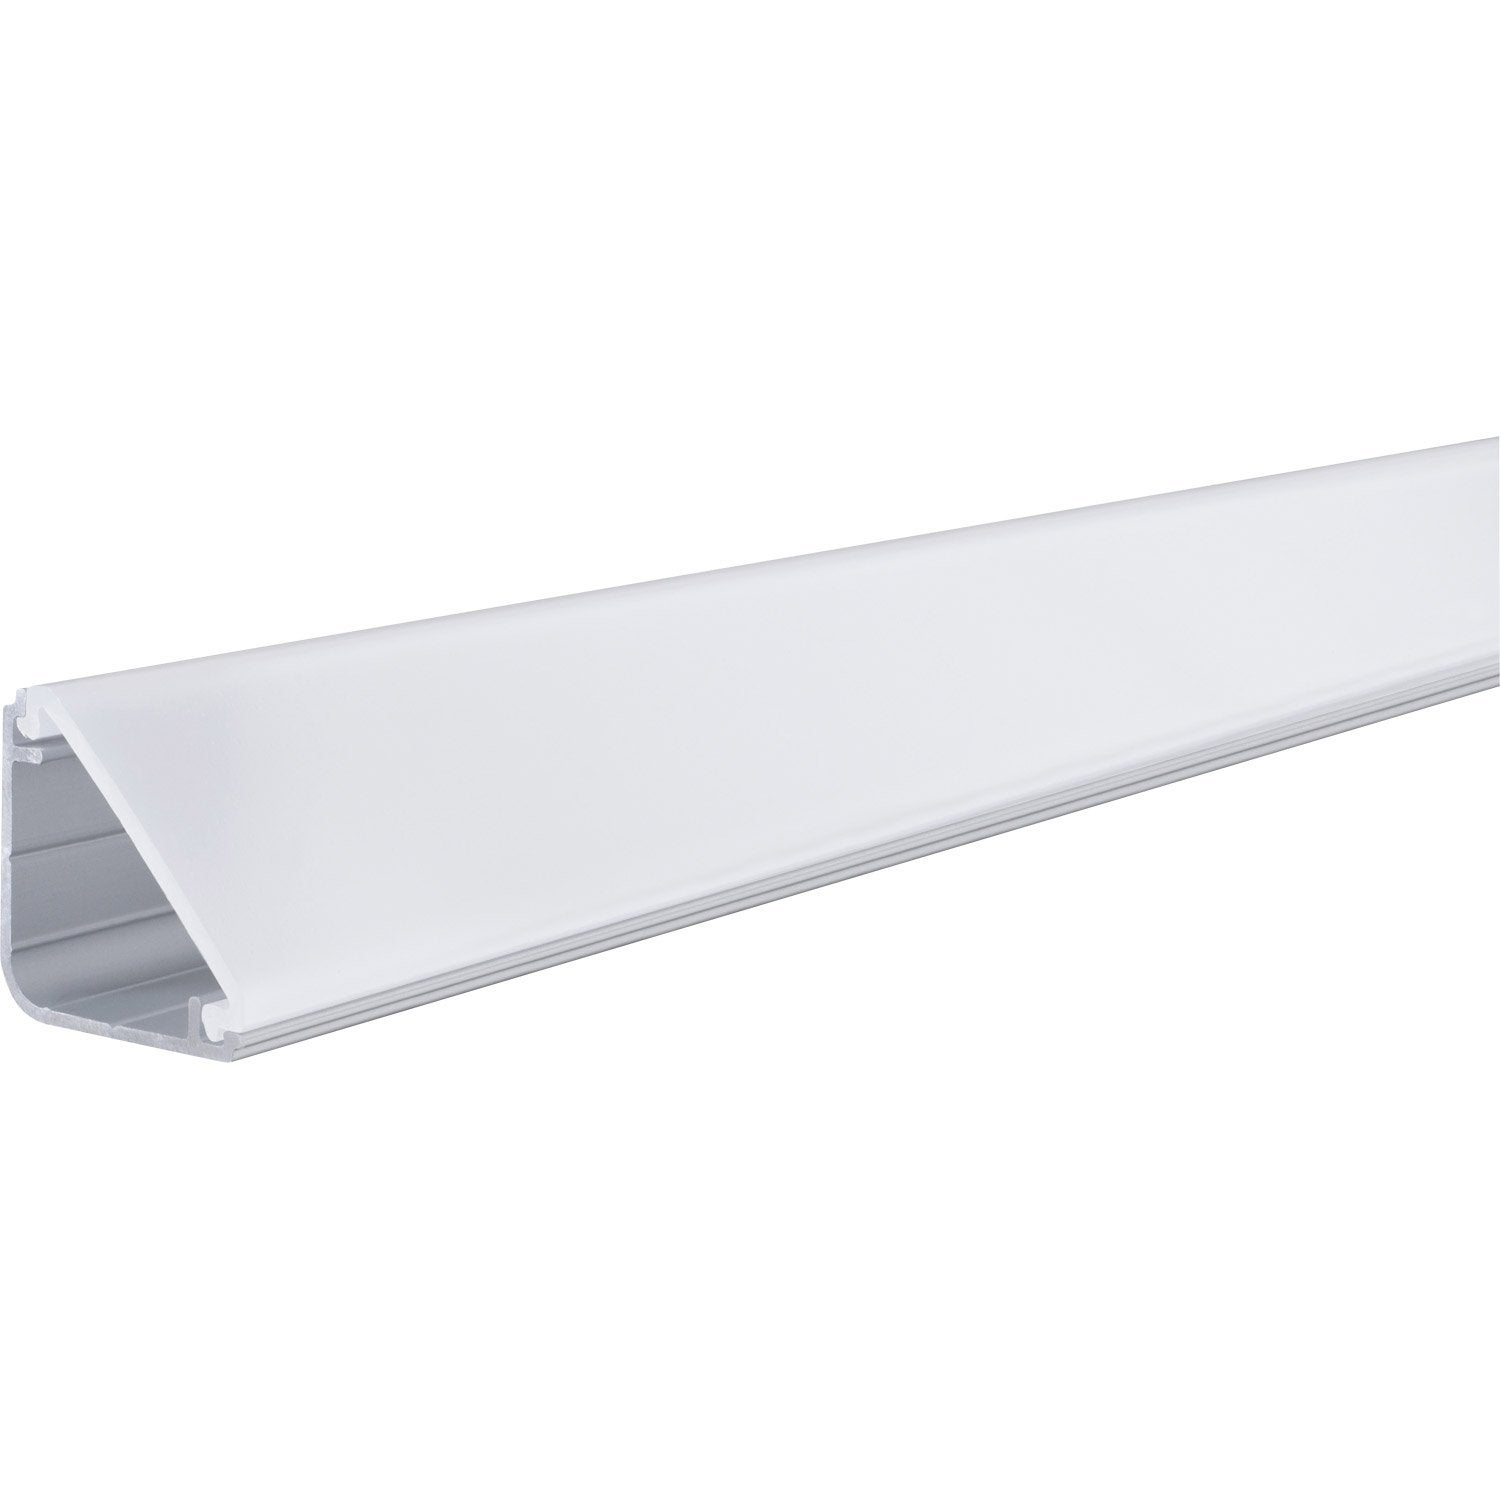 Profil pour ruban led delta profil leroy merlin for Led exterieur leroy merlin